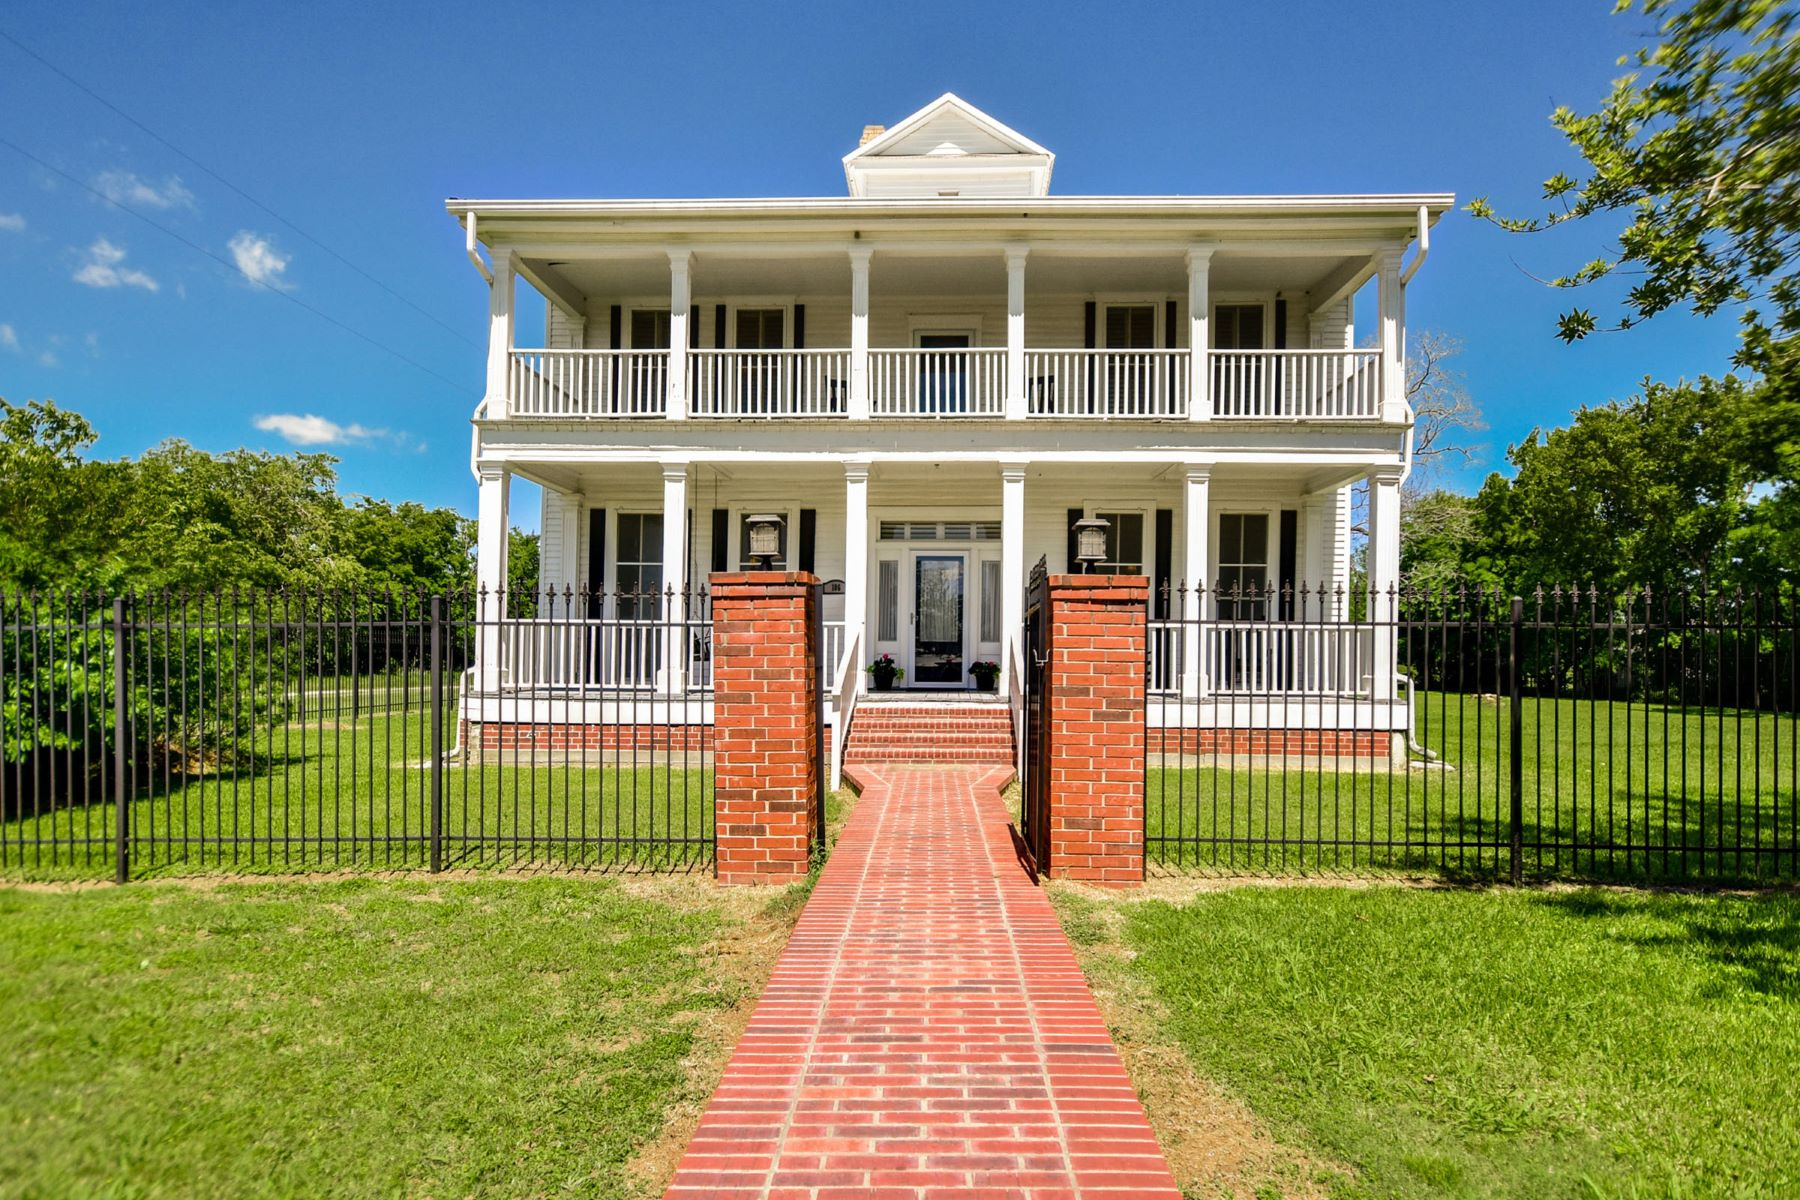 Vivienda unifamiliar por un Venta en Vintage Home with Updated Appeal 186 Washington St Paige, Texas 78659 Estados Unidos